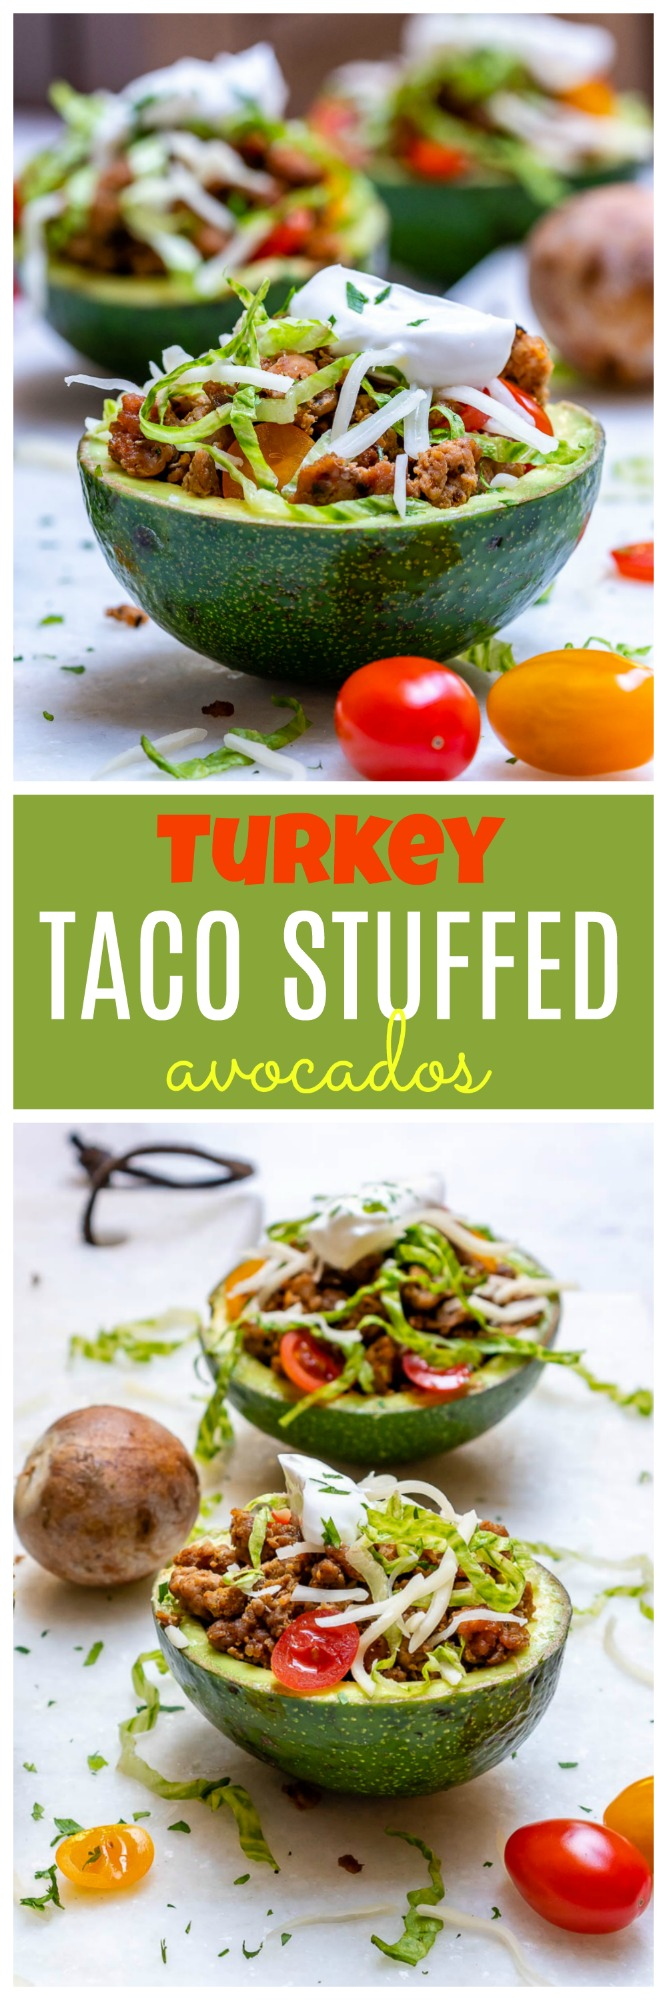 Turkey Taco Stuffed Avocados